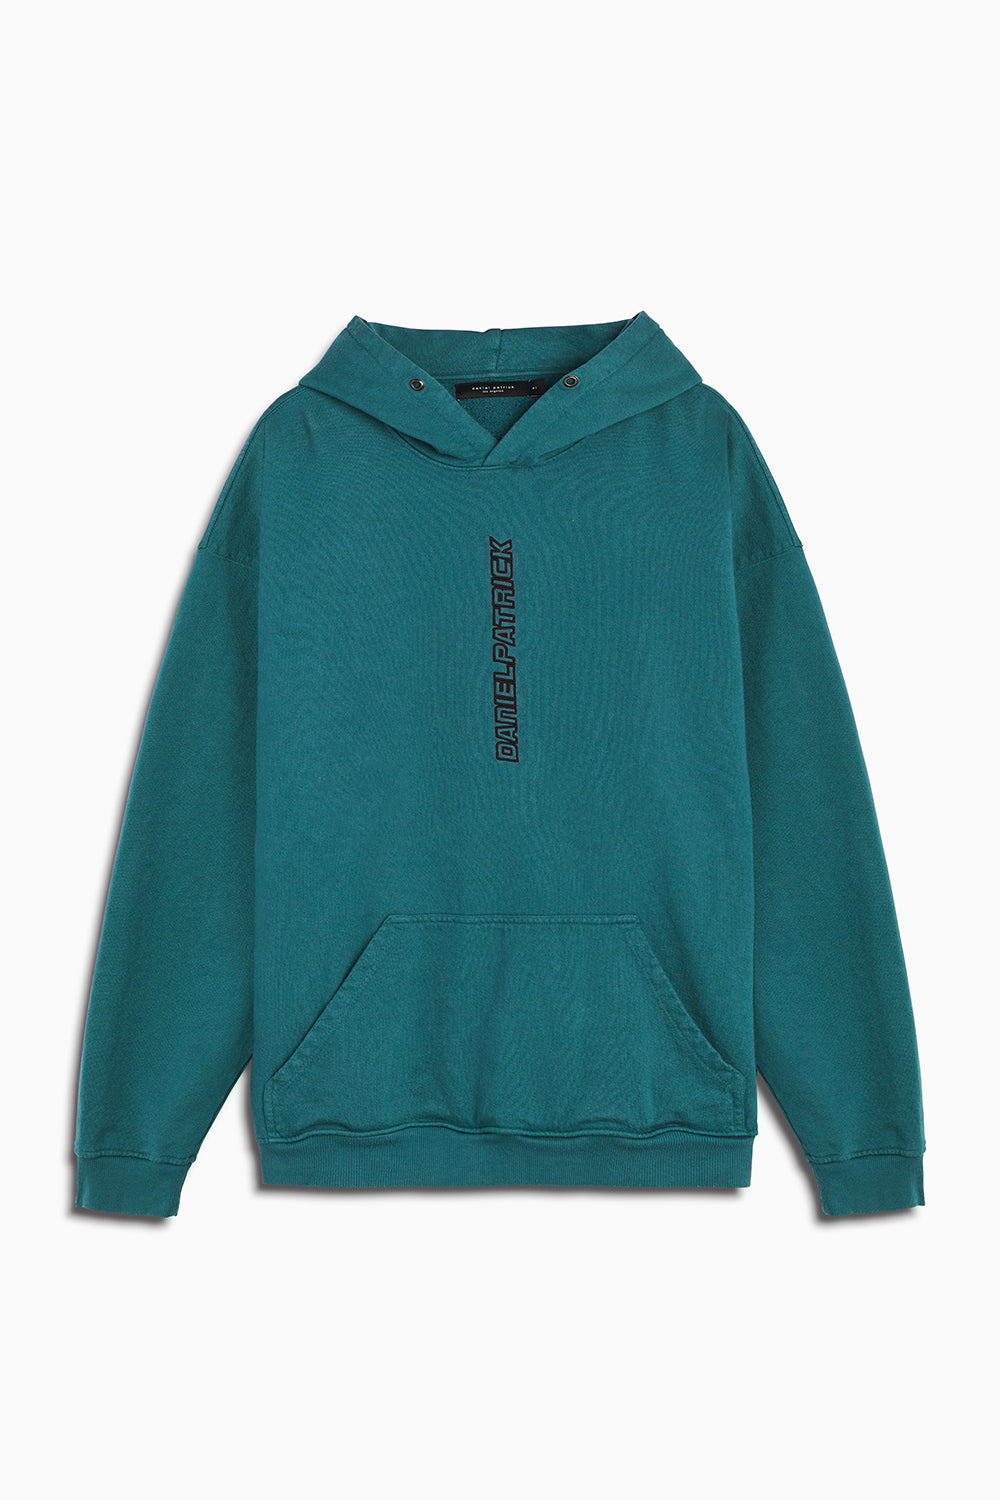 vertical logo hoodie in emerald green/black by daniel patrick